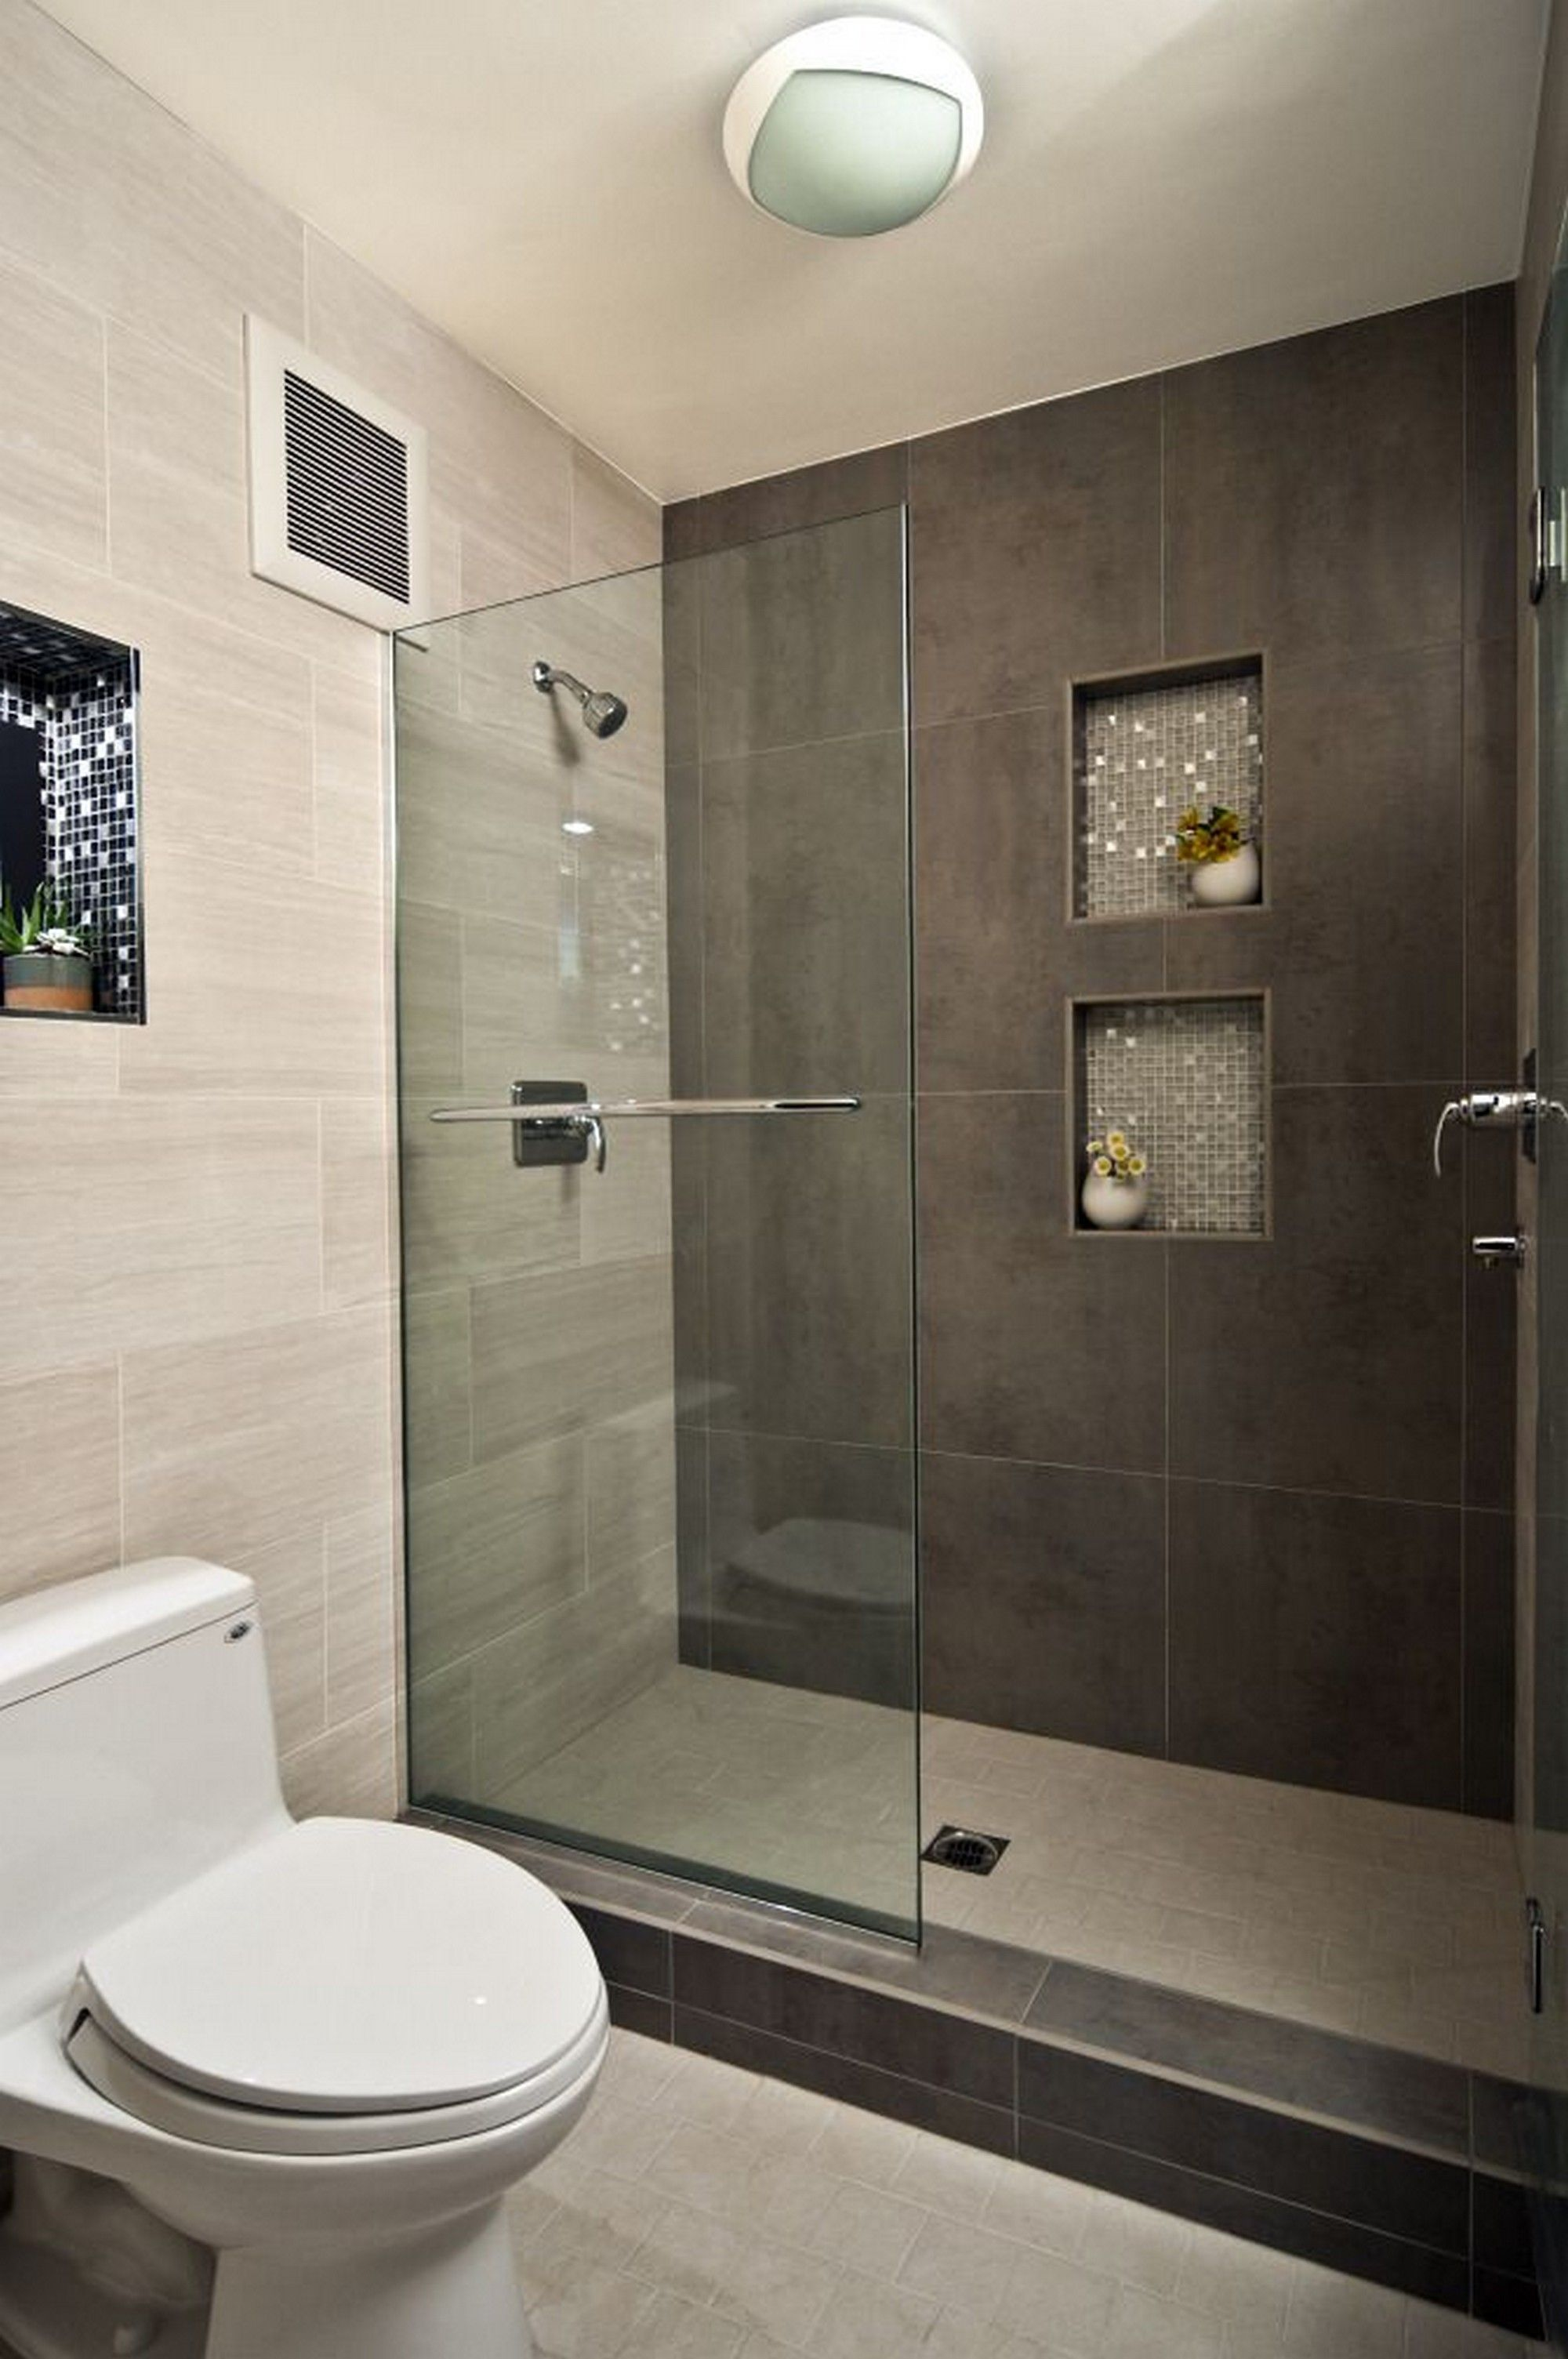 Bathroom Remodel Ideas With Walk In Tub And Shower modern bathroom design ideas with walk in shower | small bathroom